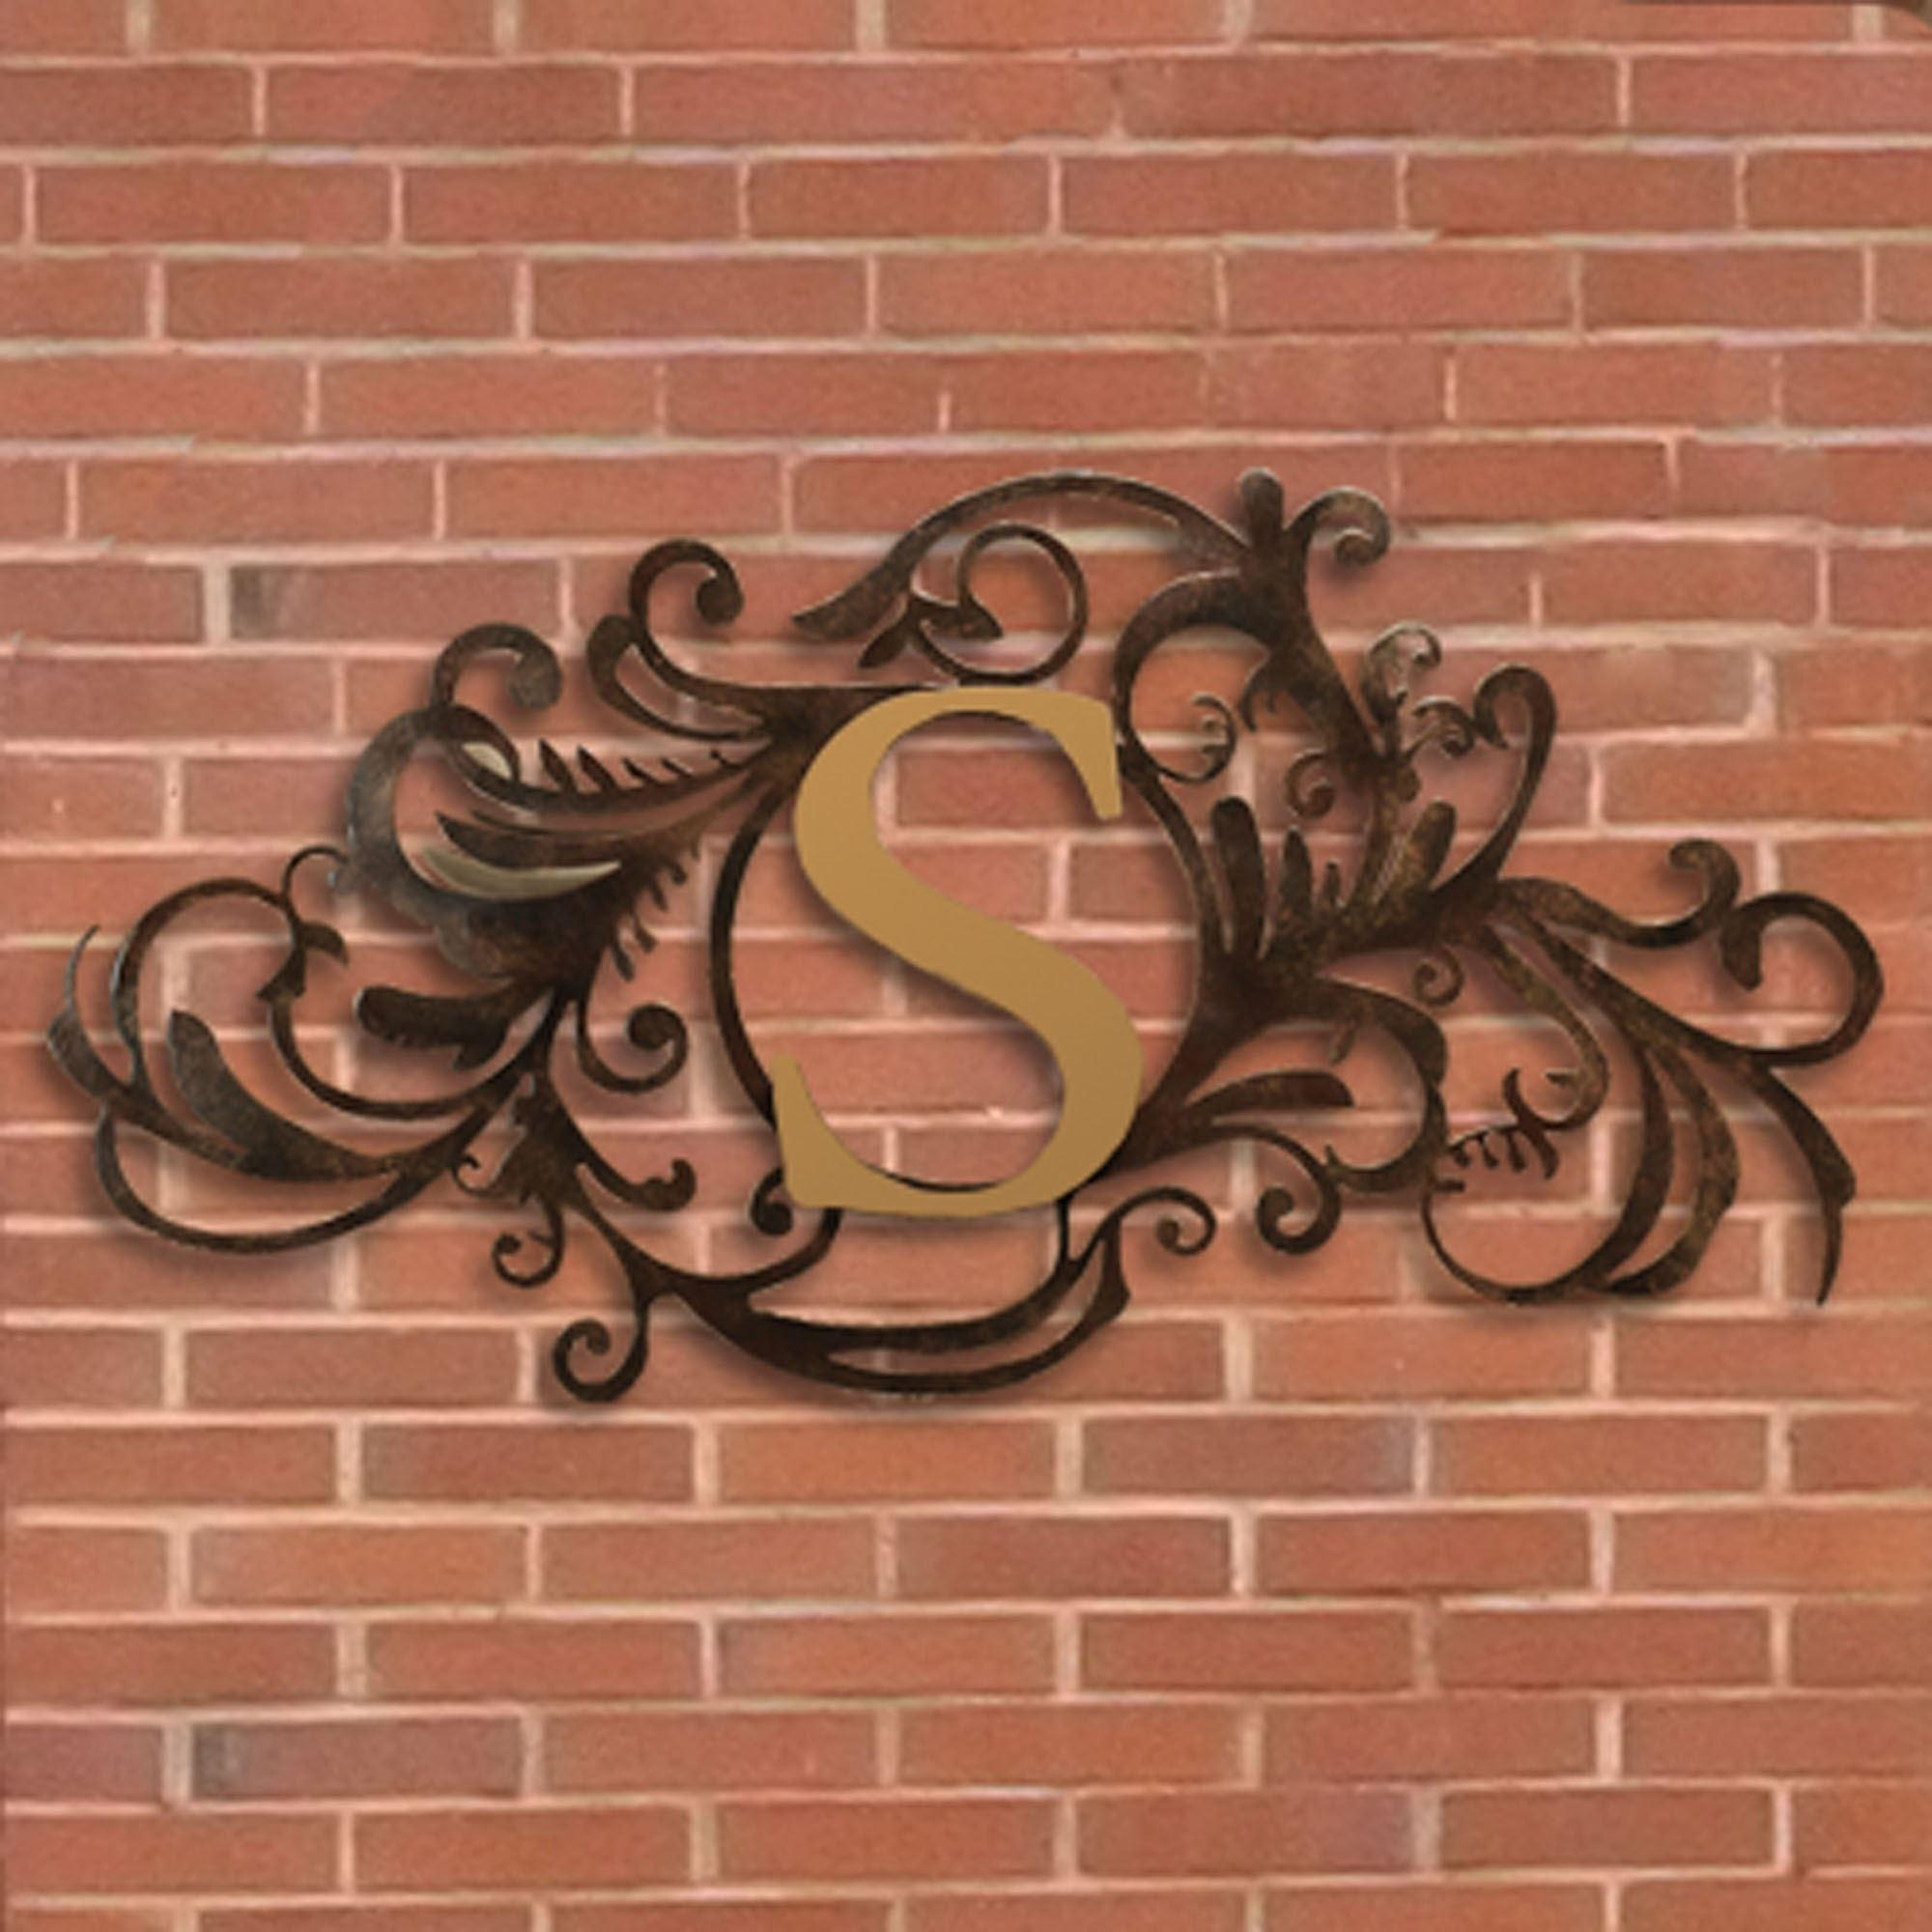 Evanston Indoor Outdoor Monogram Metal Wall Art Sign Intended For Monogram Metal Wall Art (View 4 of 20)